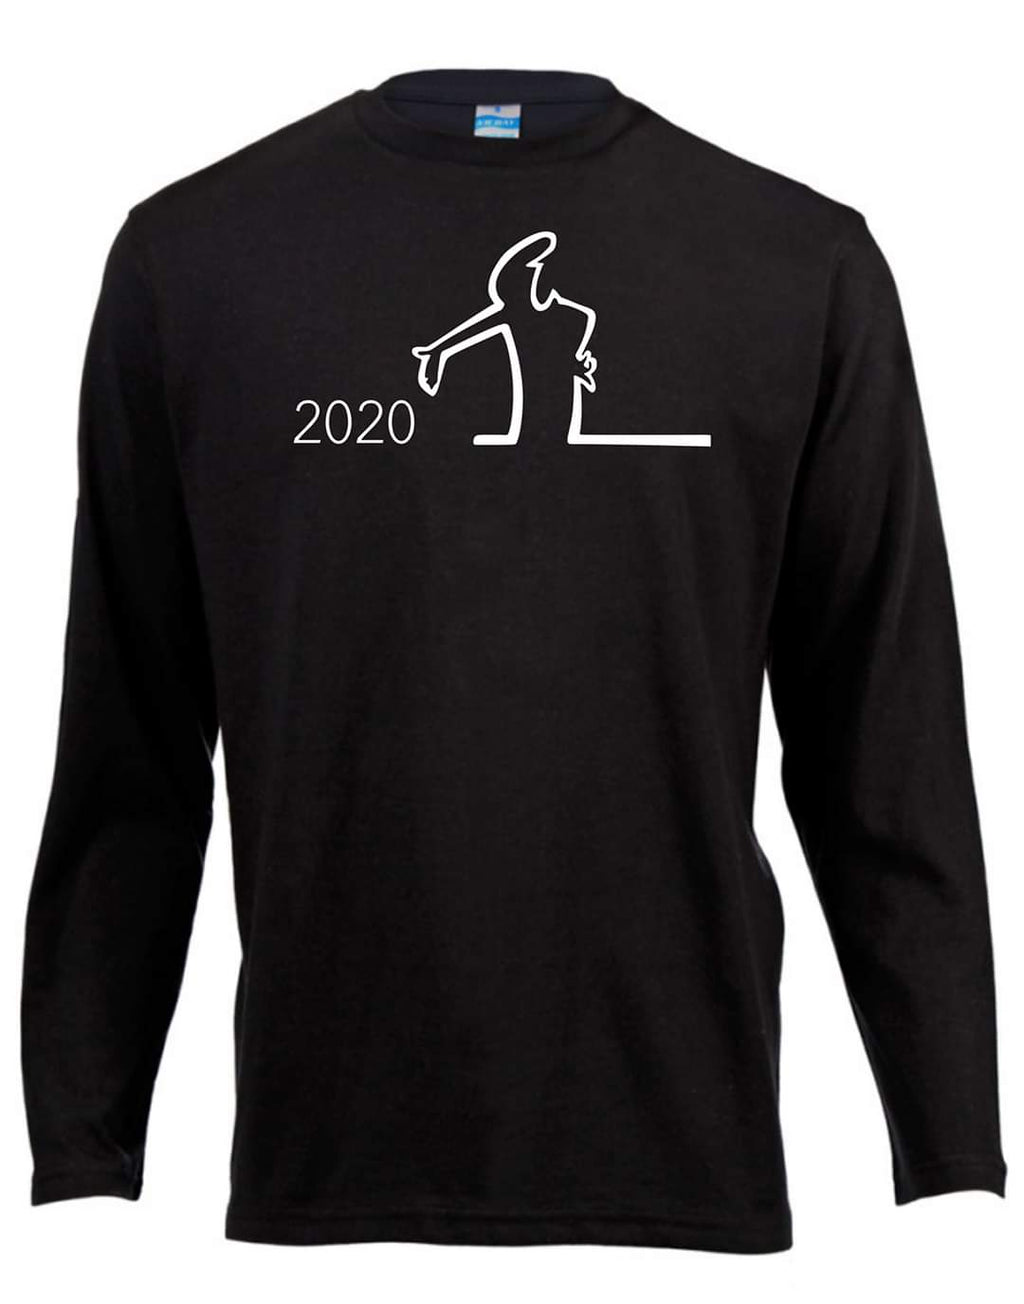 2020 Long Sleeve Shirt ~ Pre-order